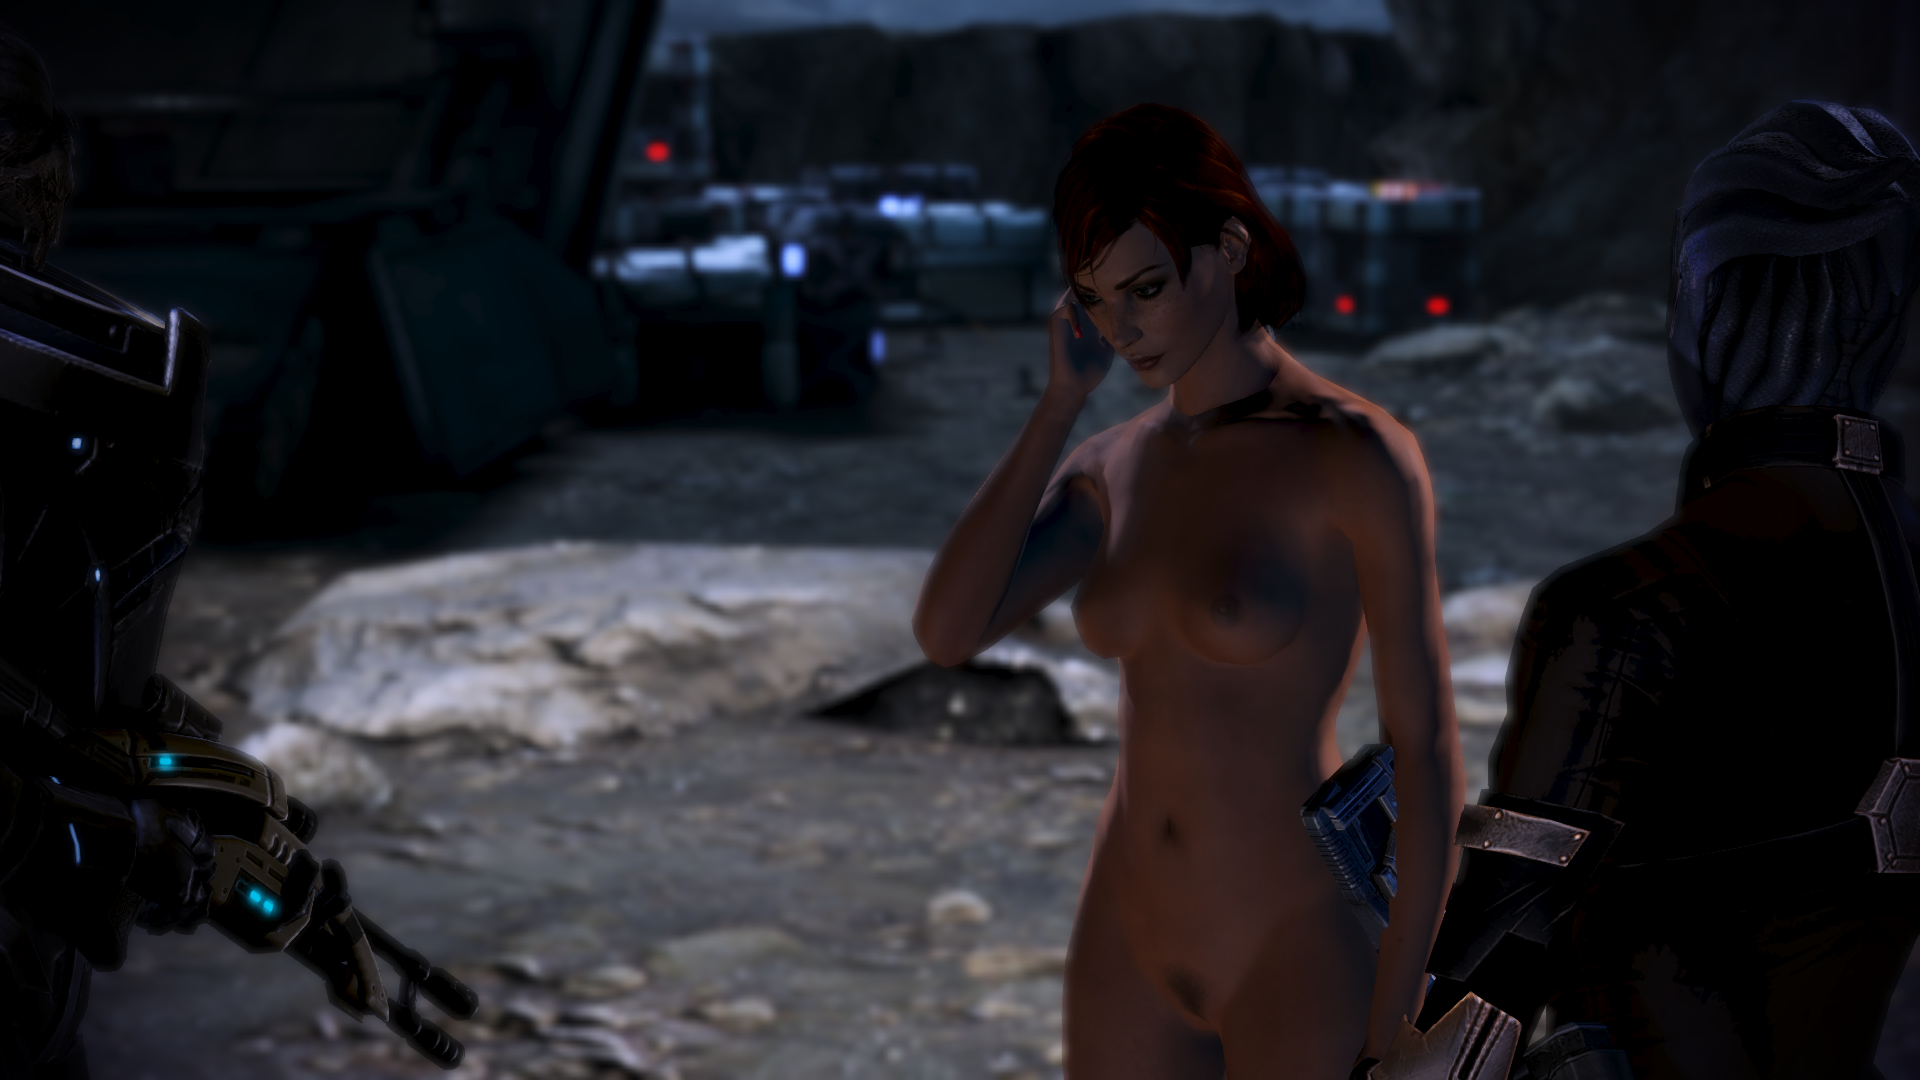 Mass effect 1 nude skins fucks movies